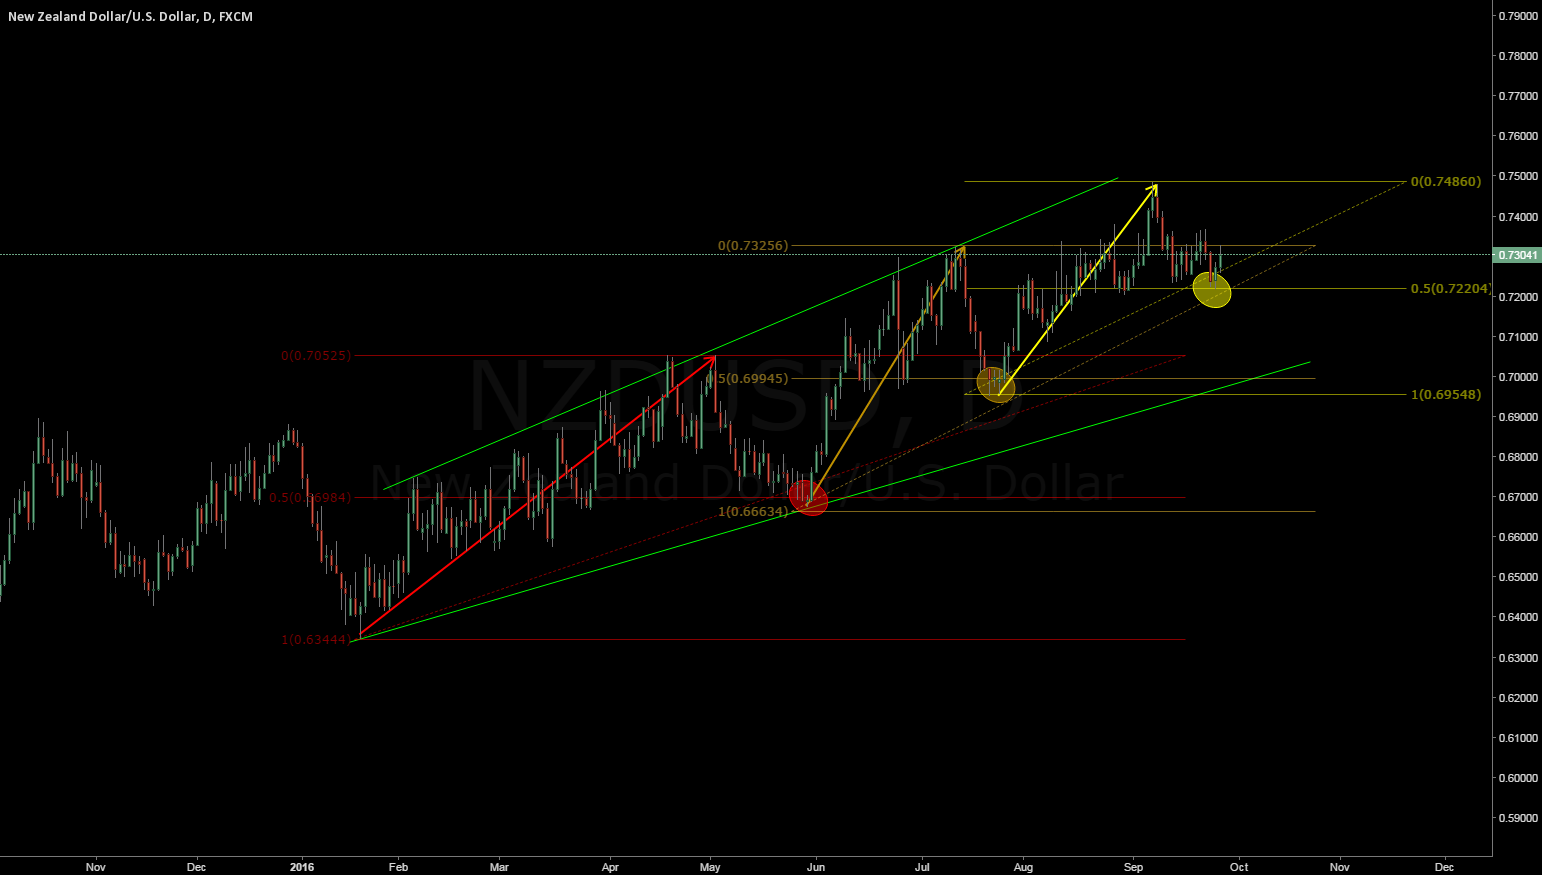 NZDUSD retraces 50% before each UP impulse. Sellers beware!